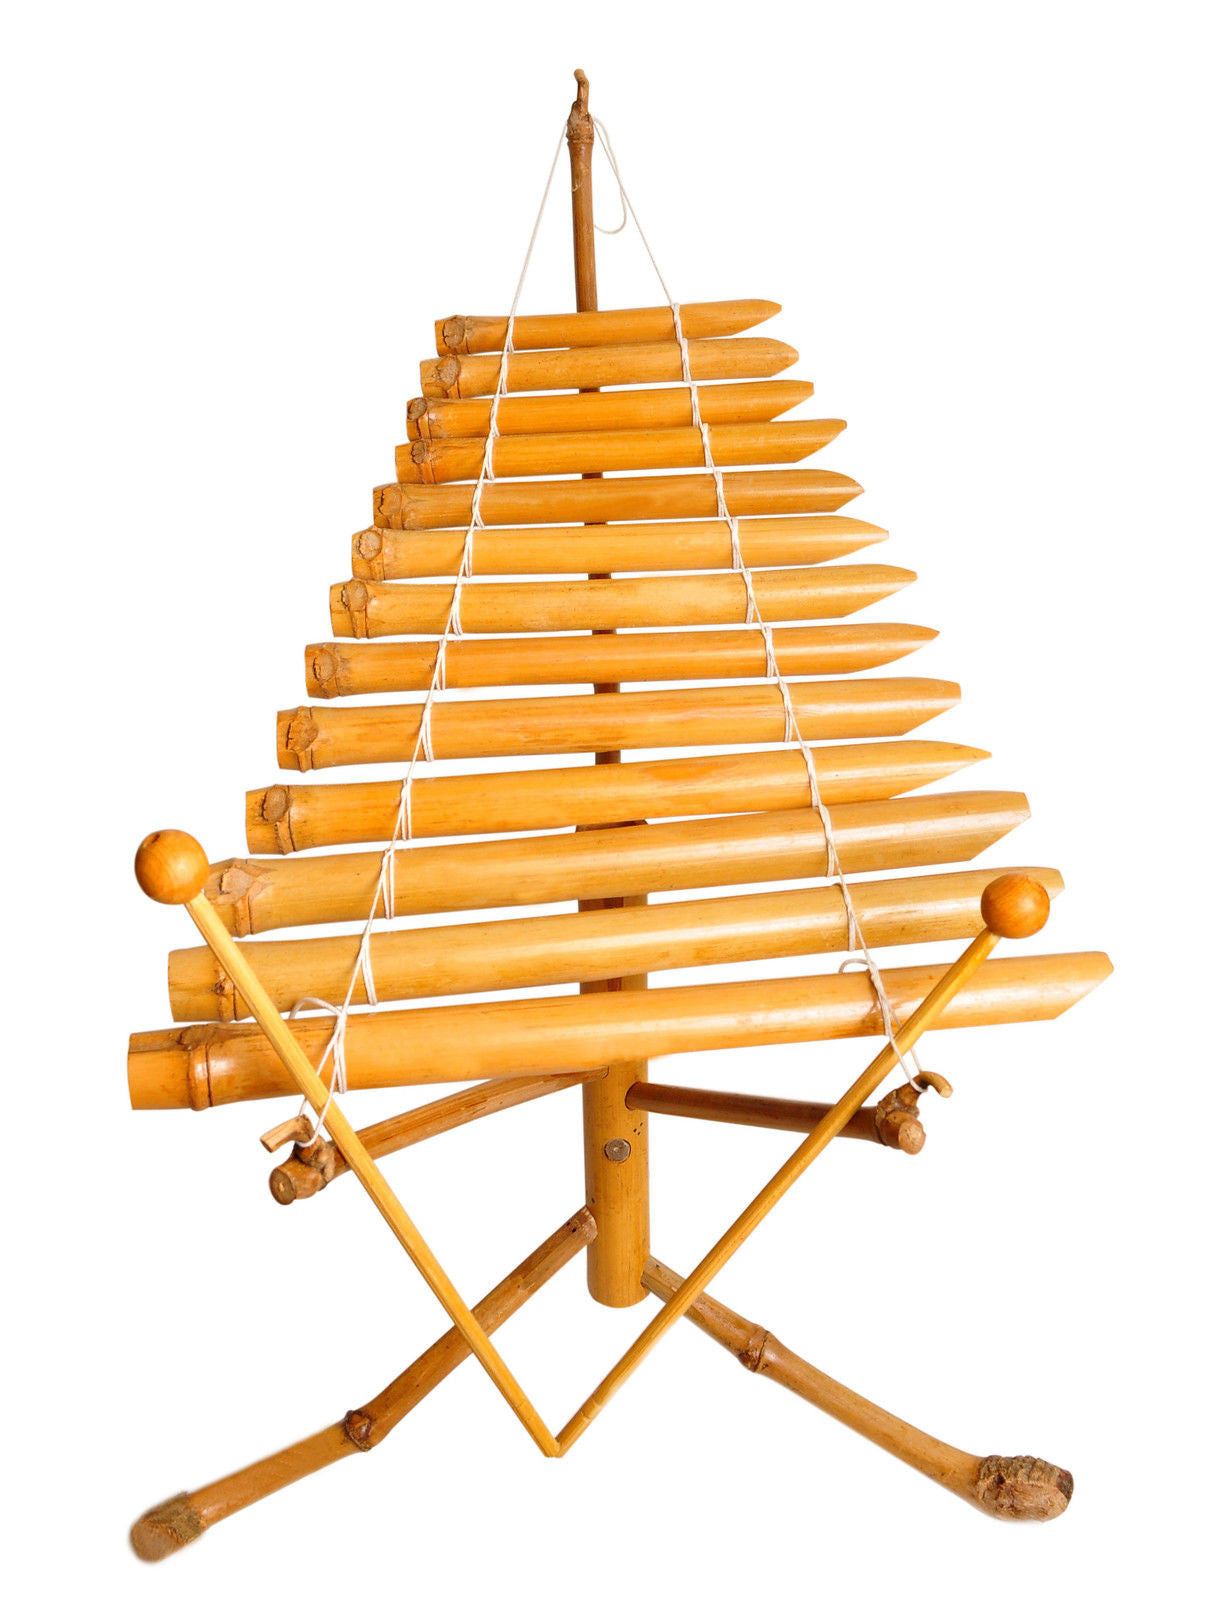 Bamboo Xylophone Vietnamese Traditional Instrument mini T'rung Fair Trade